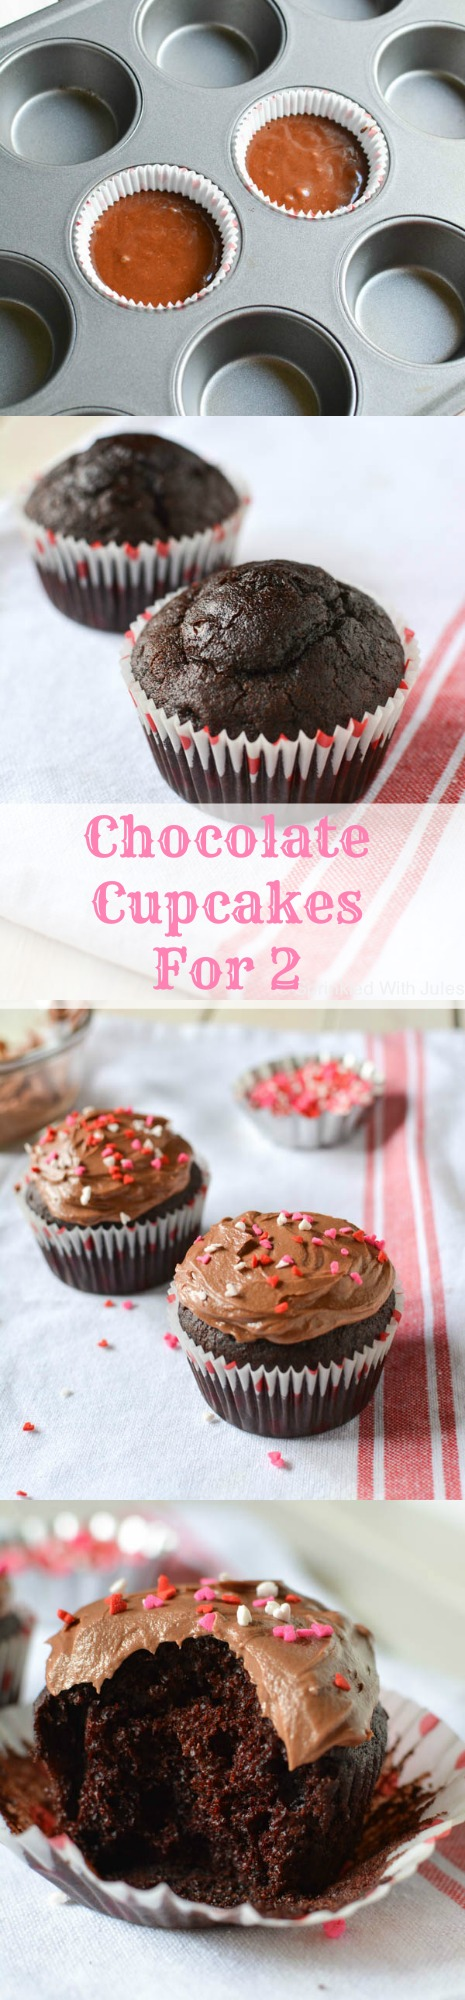 Chocolate Cupcakes for 2. This easy recipe makes only 2 cupcakes! Perfect for those chocolate cravings. / Sprinkled With Jules